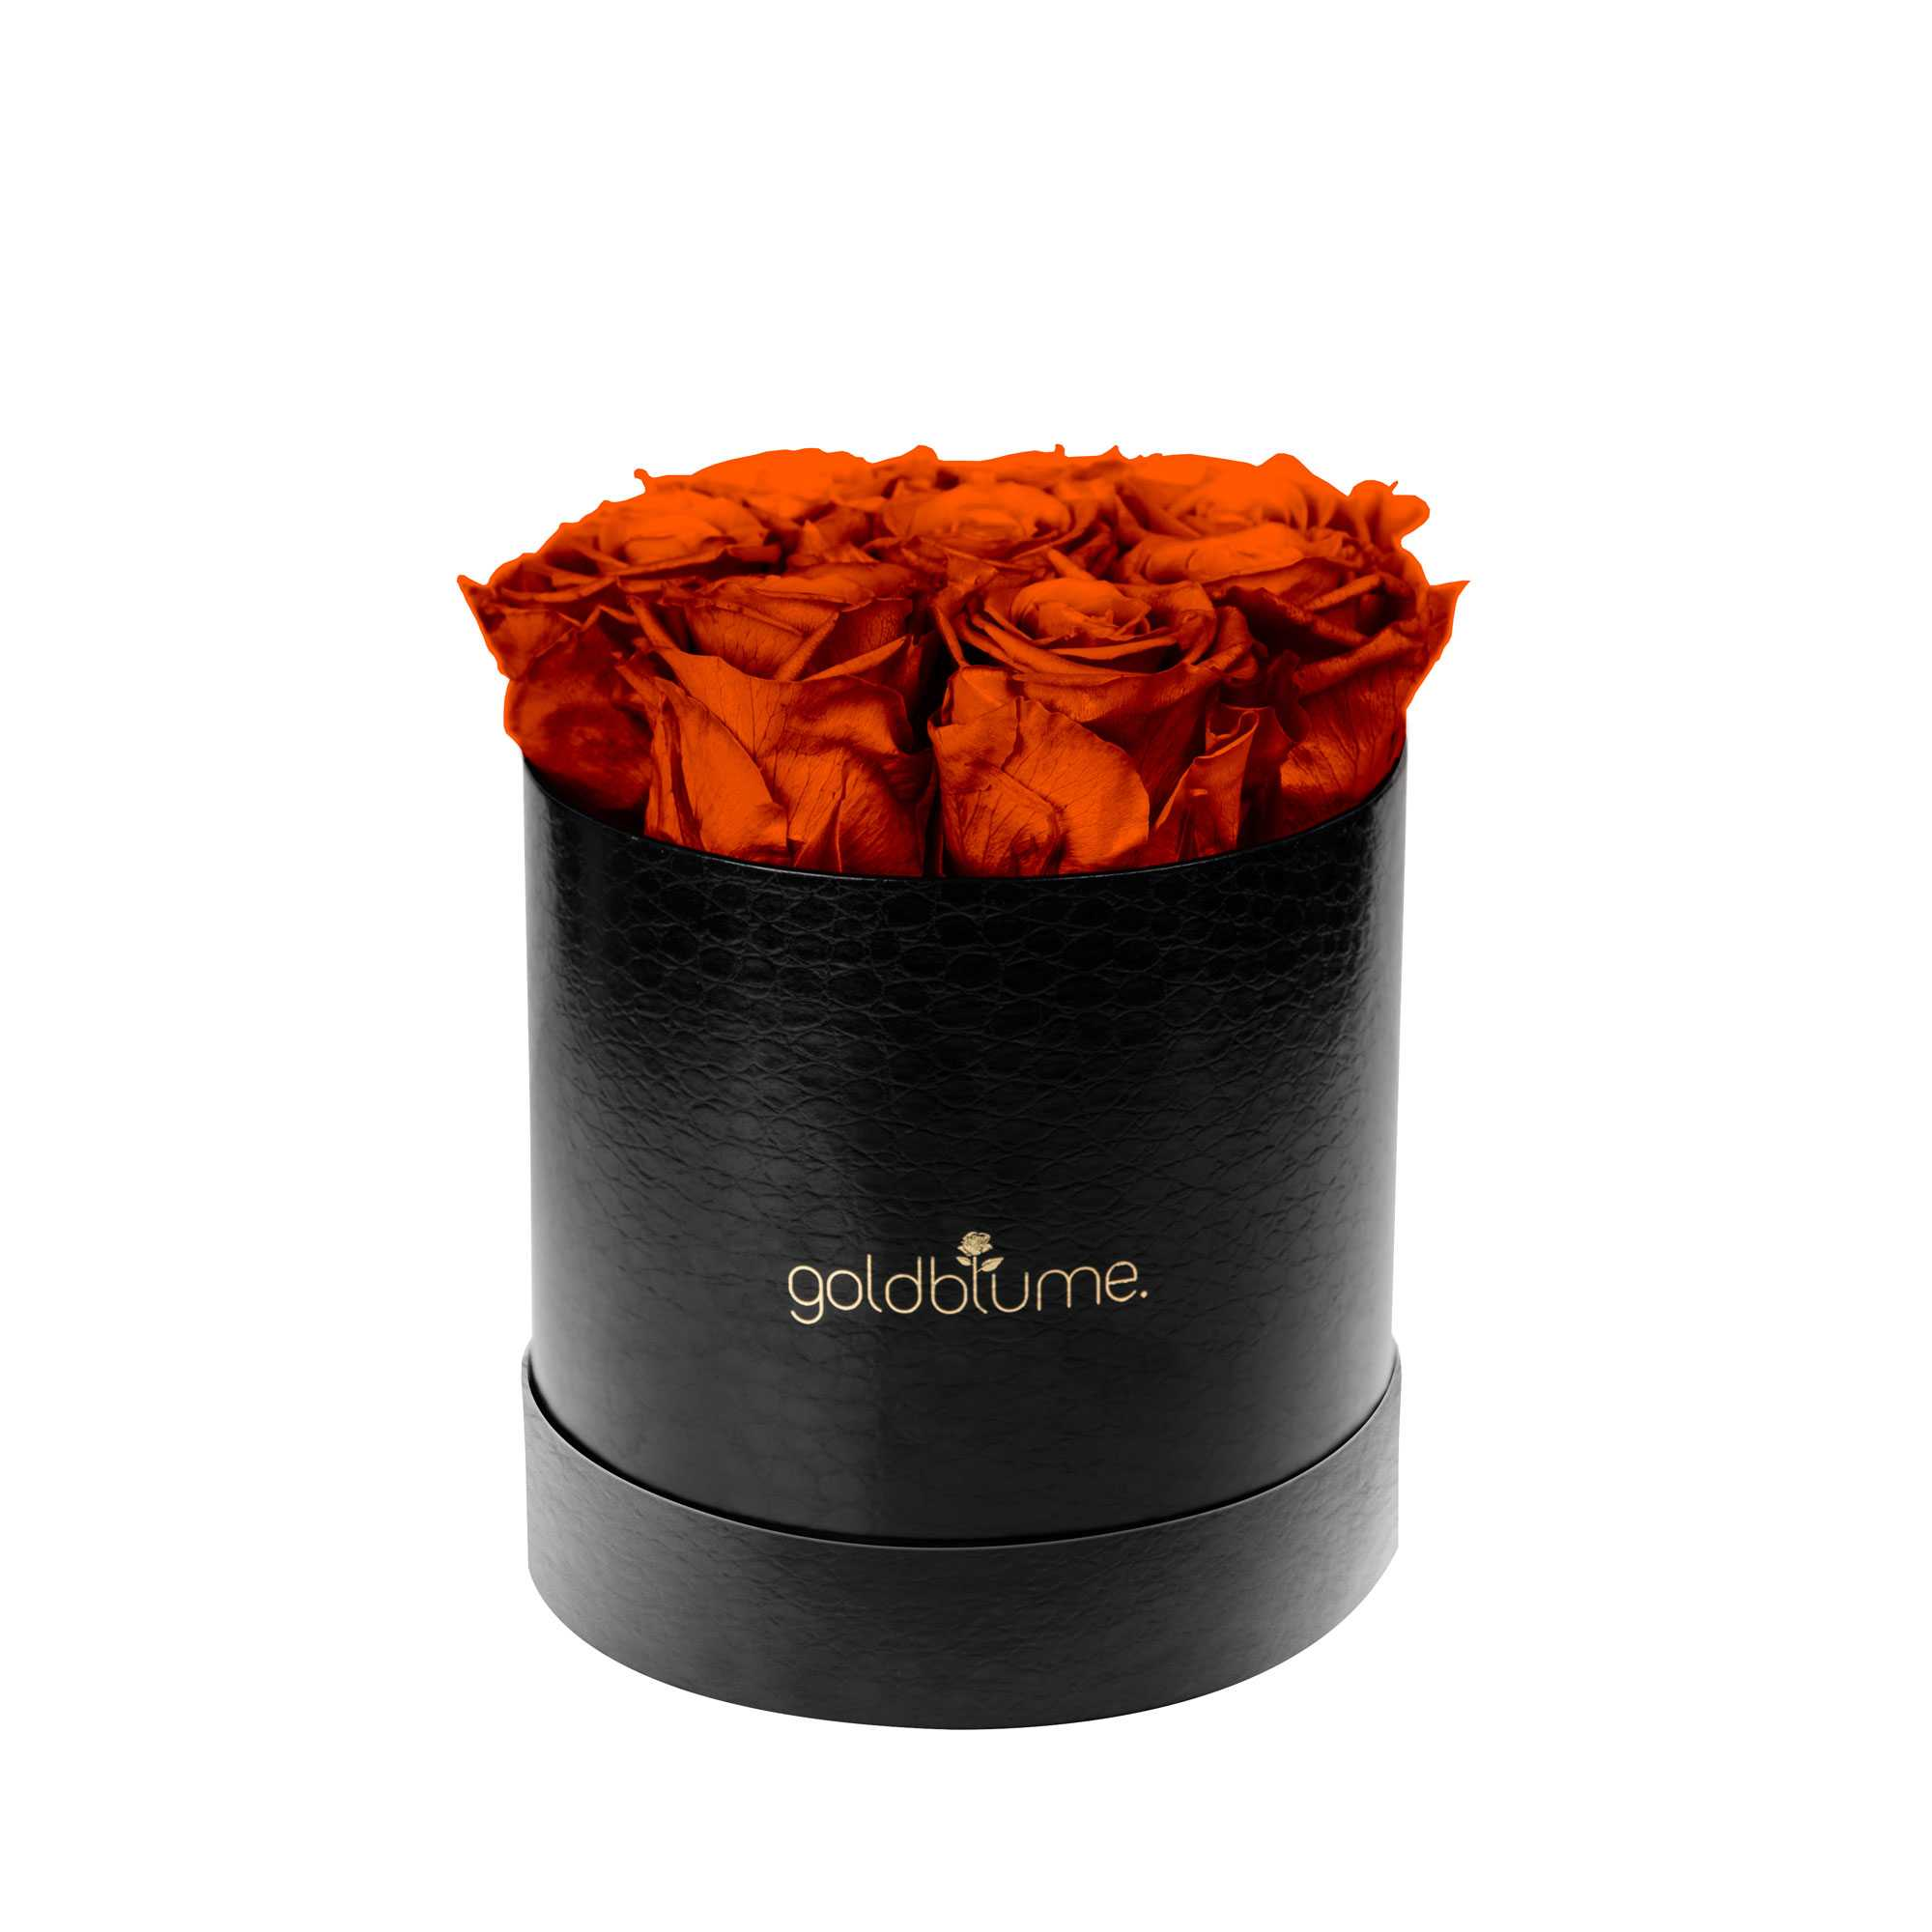 Klassische Medium [product_type] Goldblume  goldblume1.myshopify.com Orange Flame Orange Flame [option2] [option3]